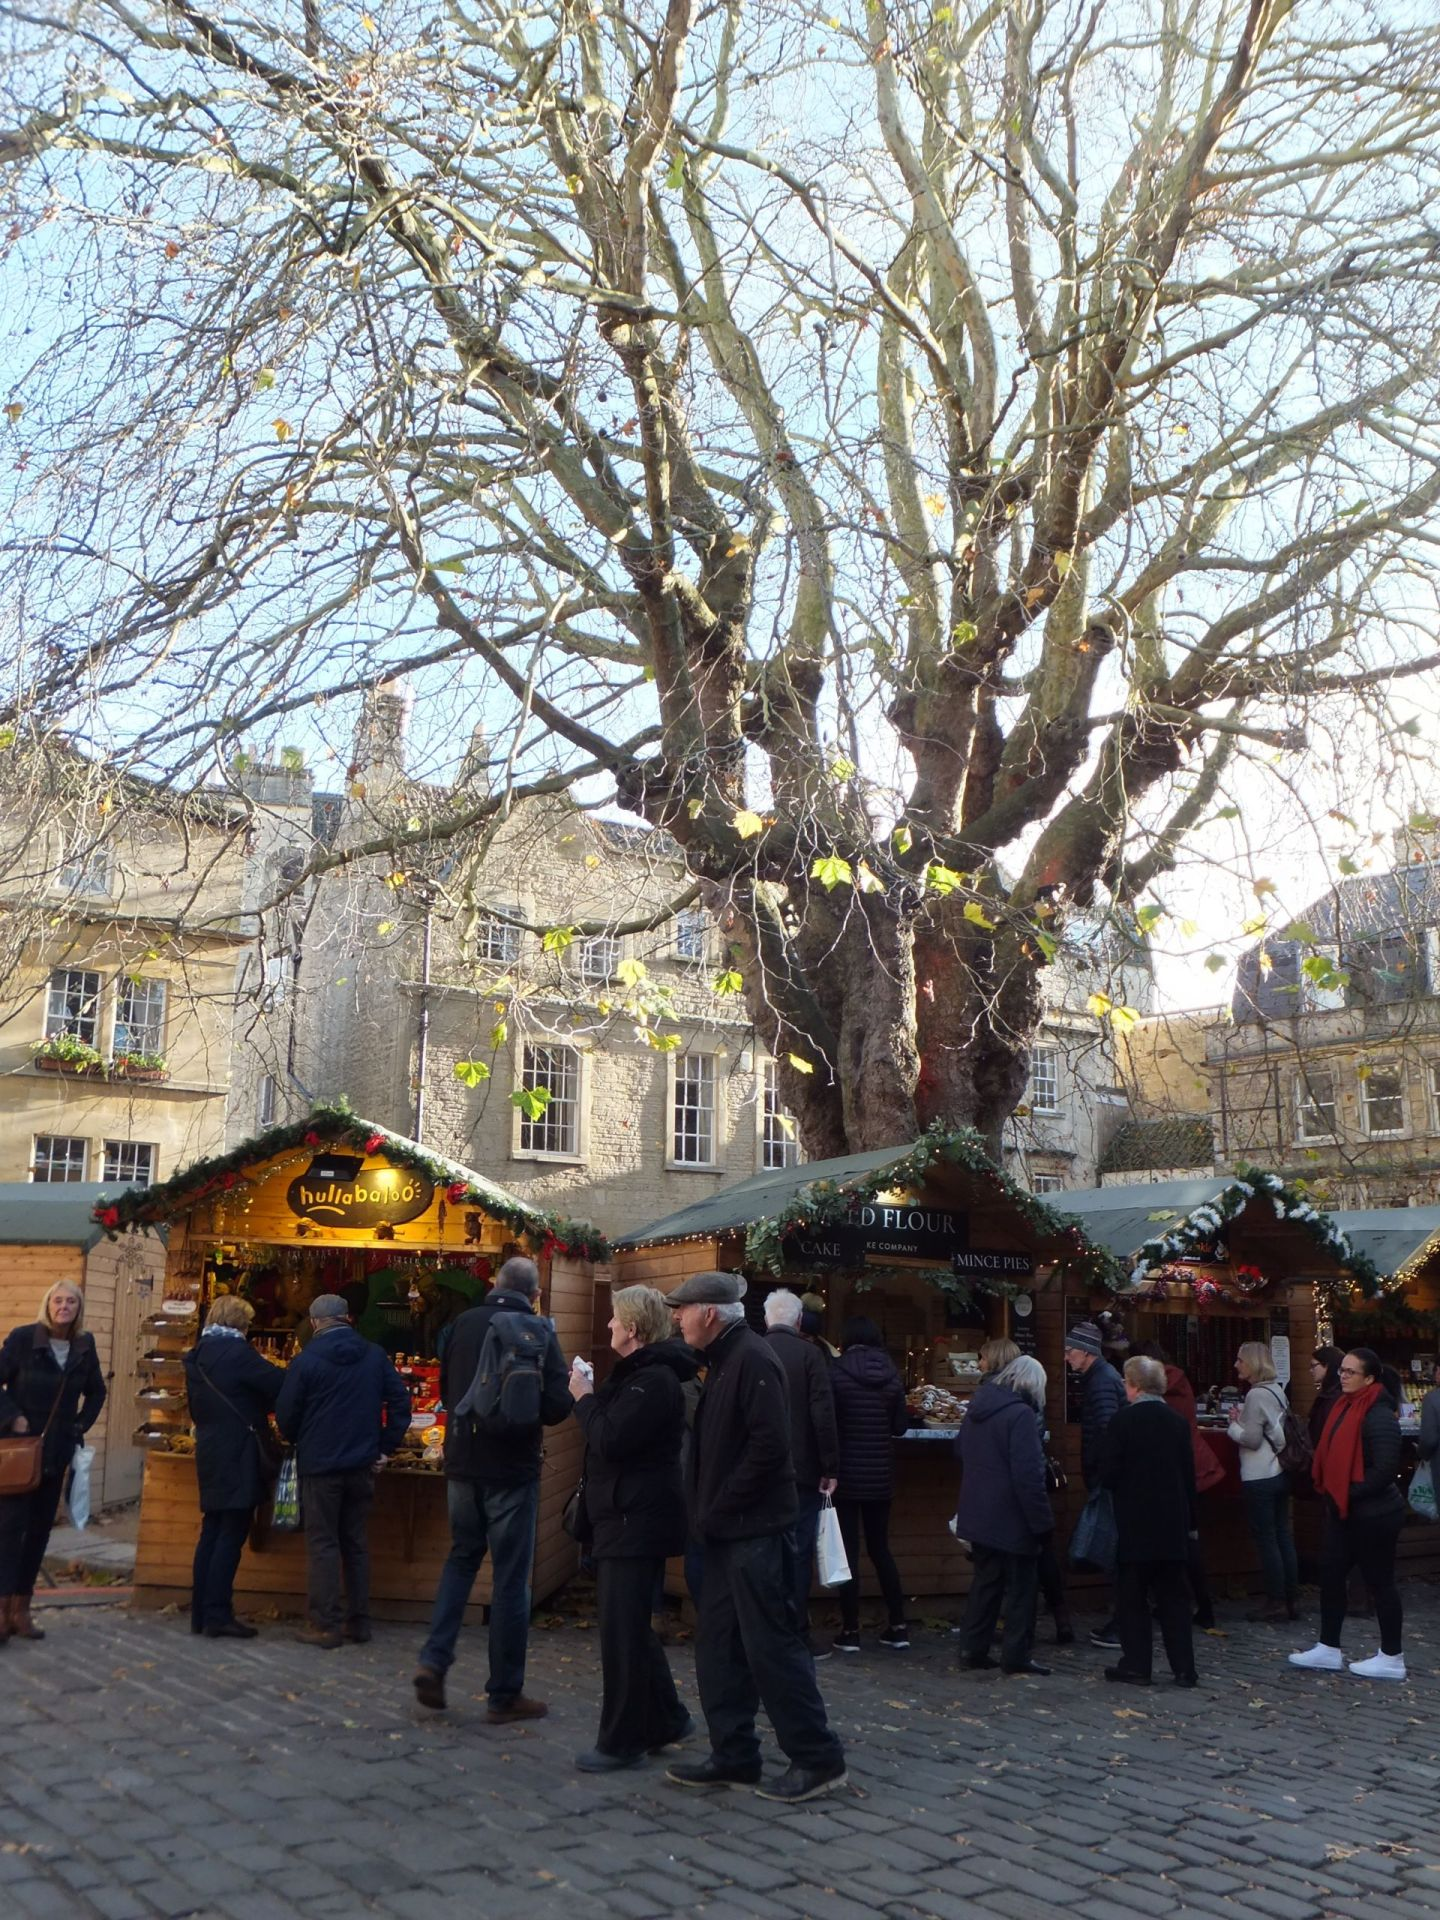 A festive day out at Bath Christmas Market